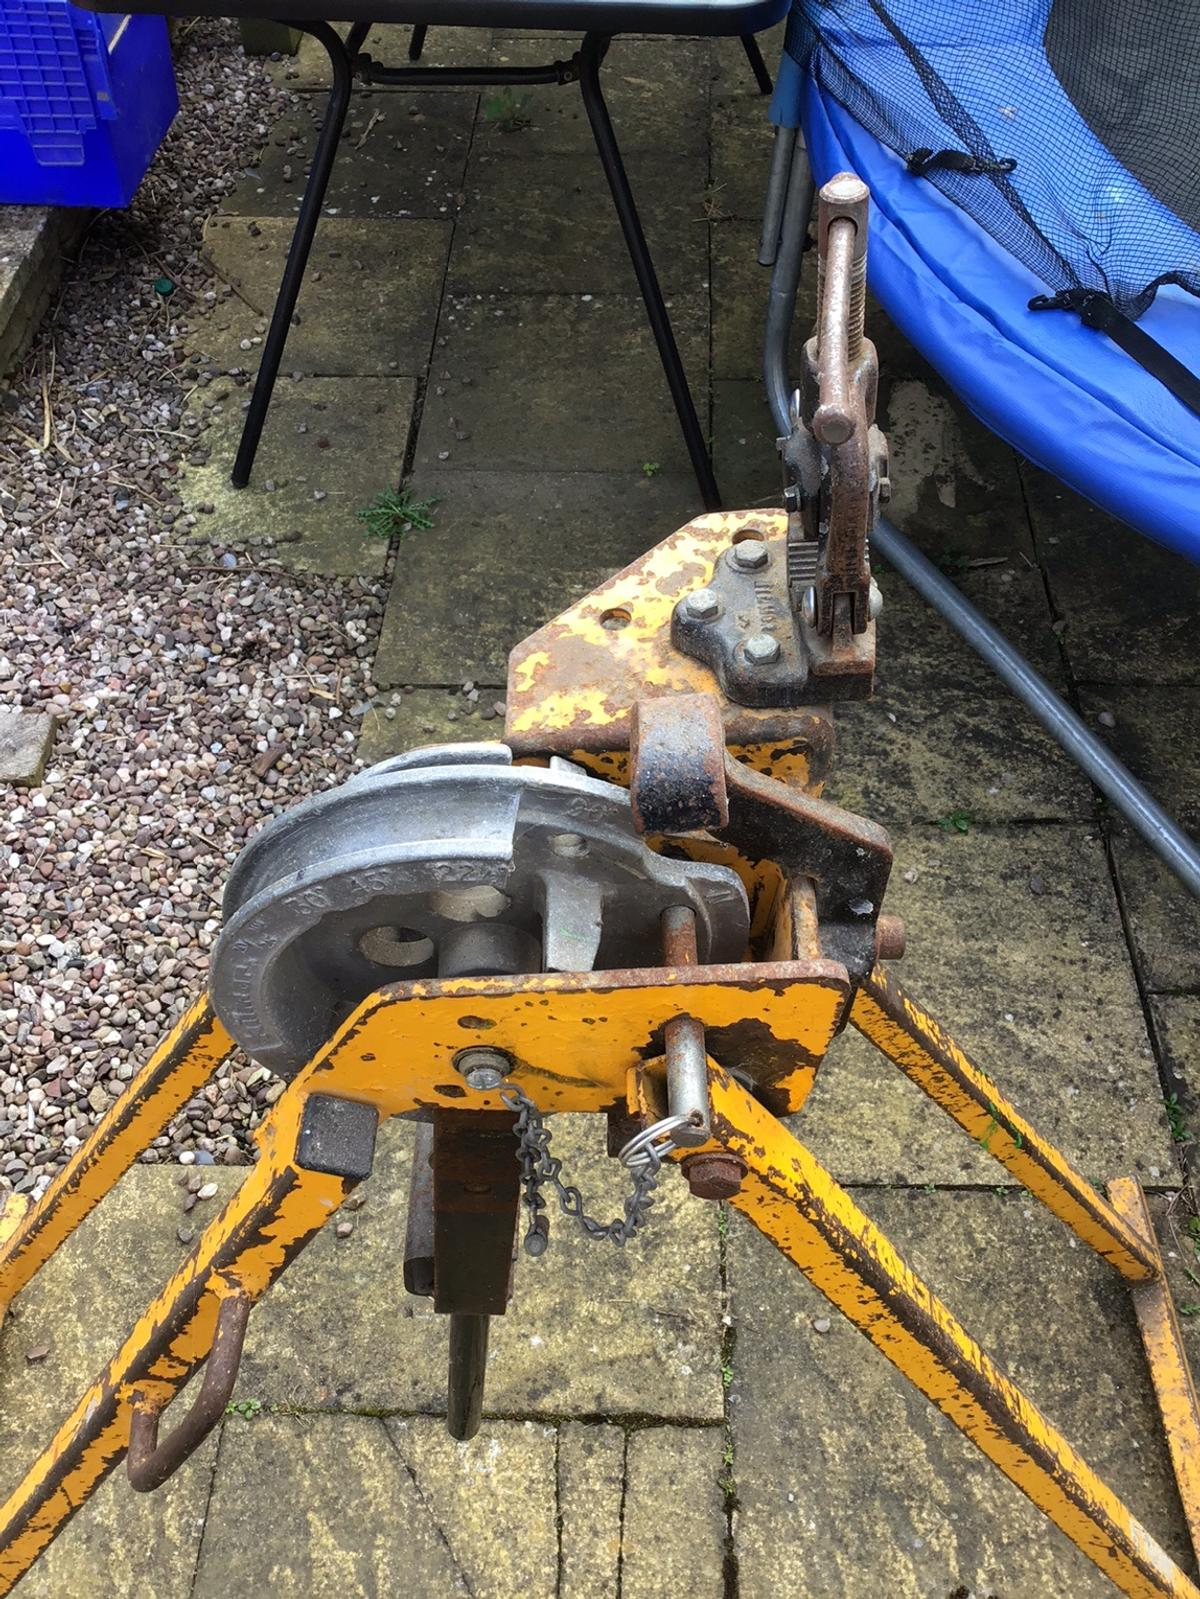 Bends 20 and 25 ml metal conduit Comes with pipe vise grip